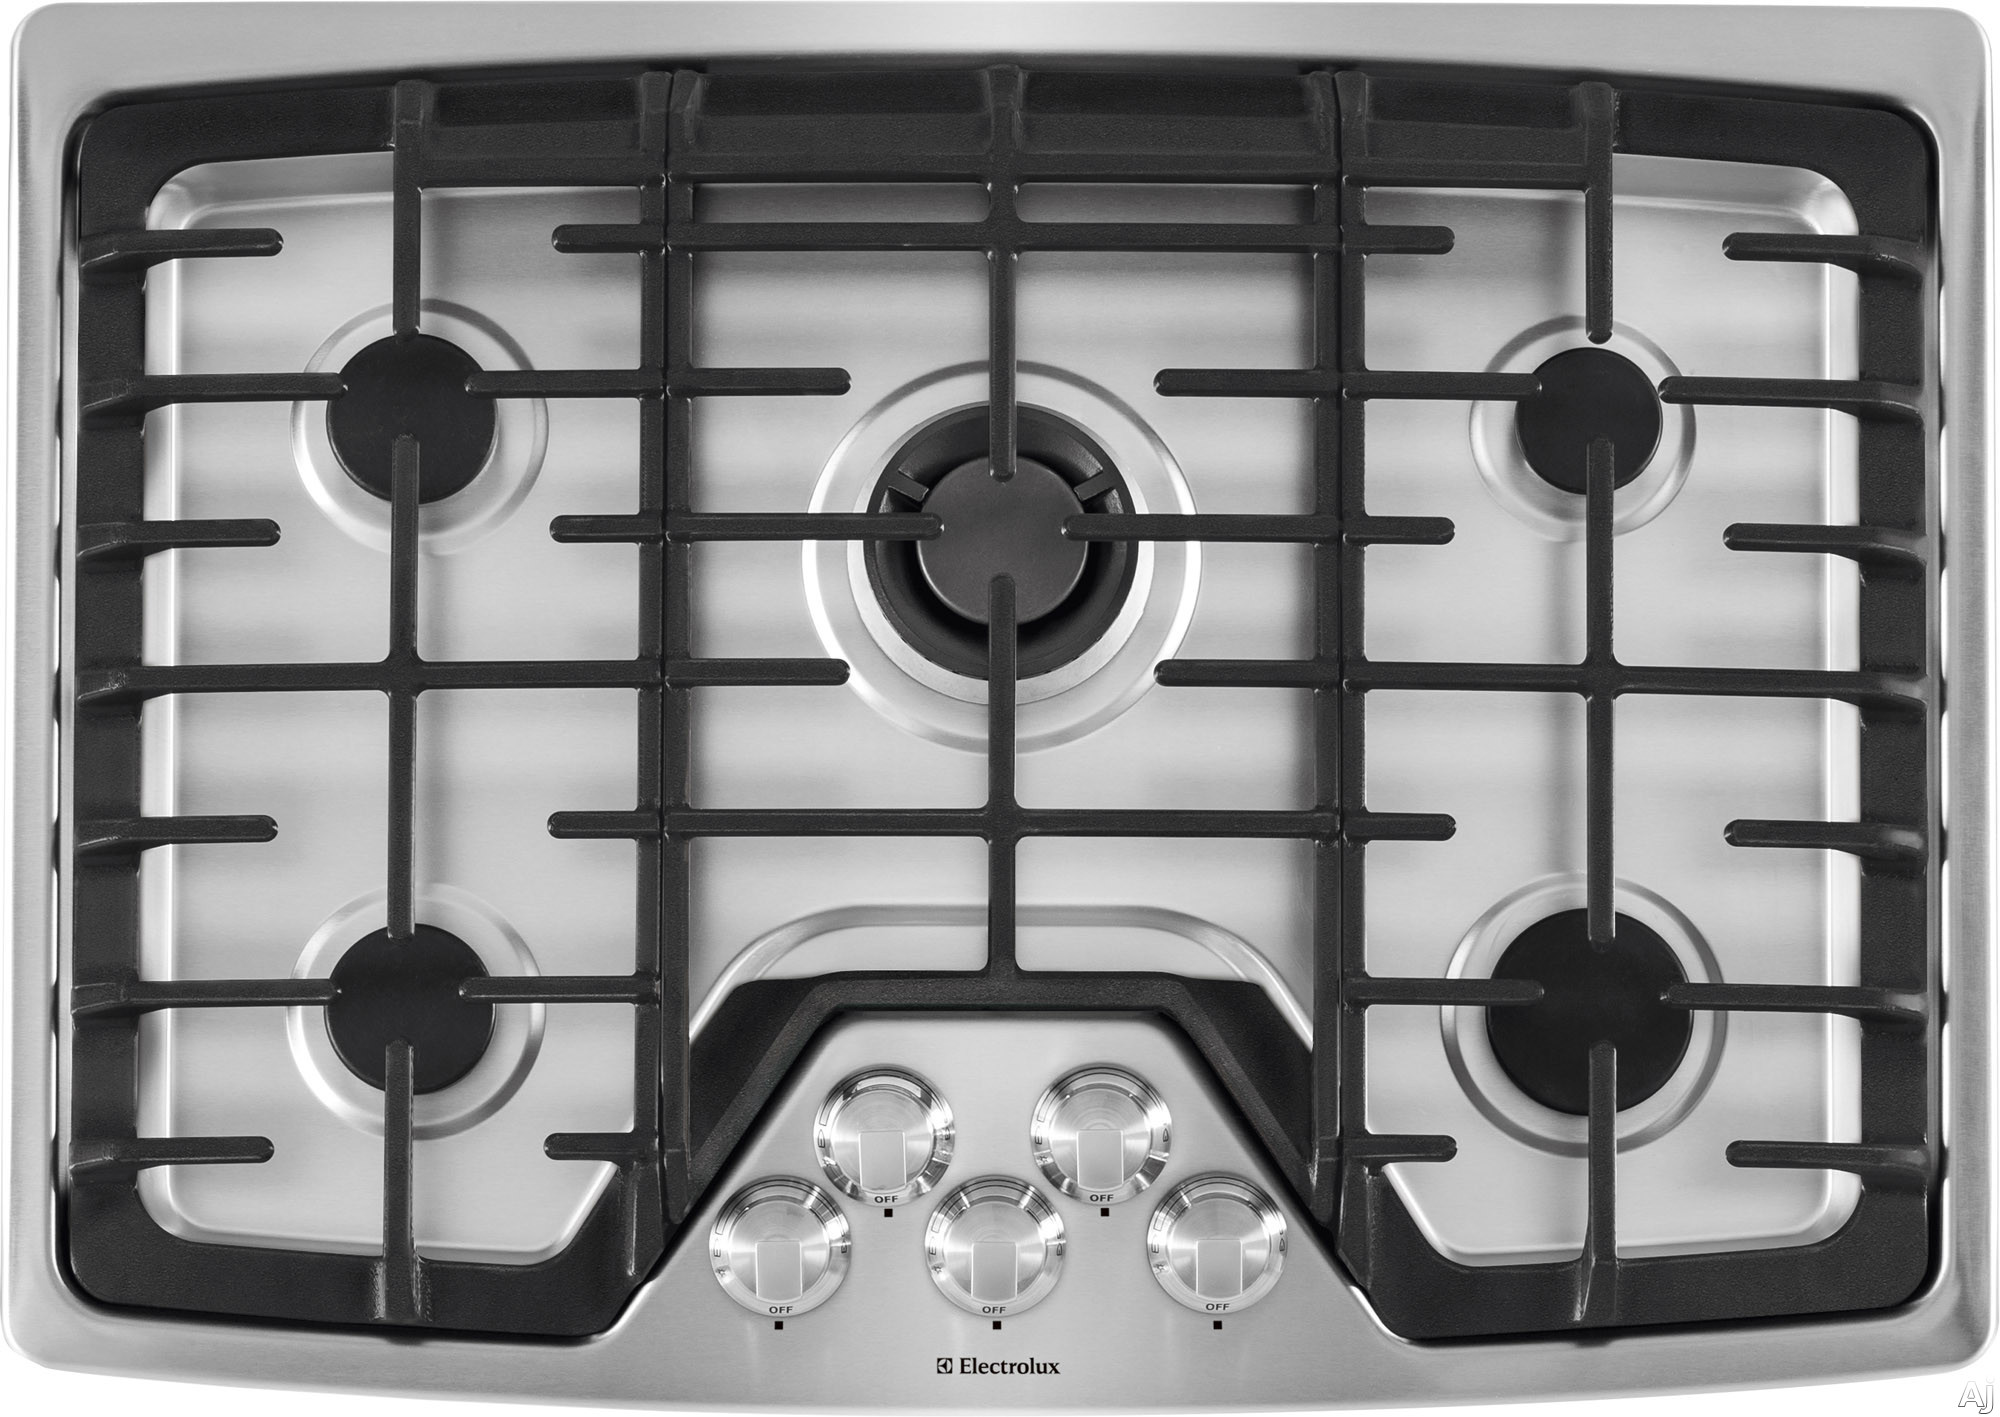 Electrolux EW30GC60PS 30 Inch Gas Cooktop with 5 Sealed Burners, 450 - 18,000 BTU Min-2-Max Burner, Professional-Grade Control Knobs, Continuous Grates and ADA Compliant Design